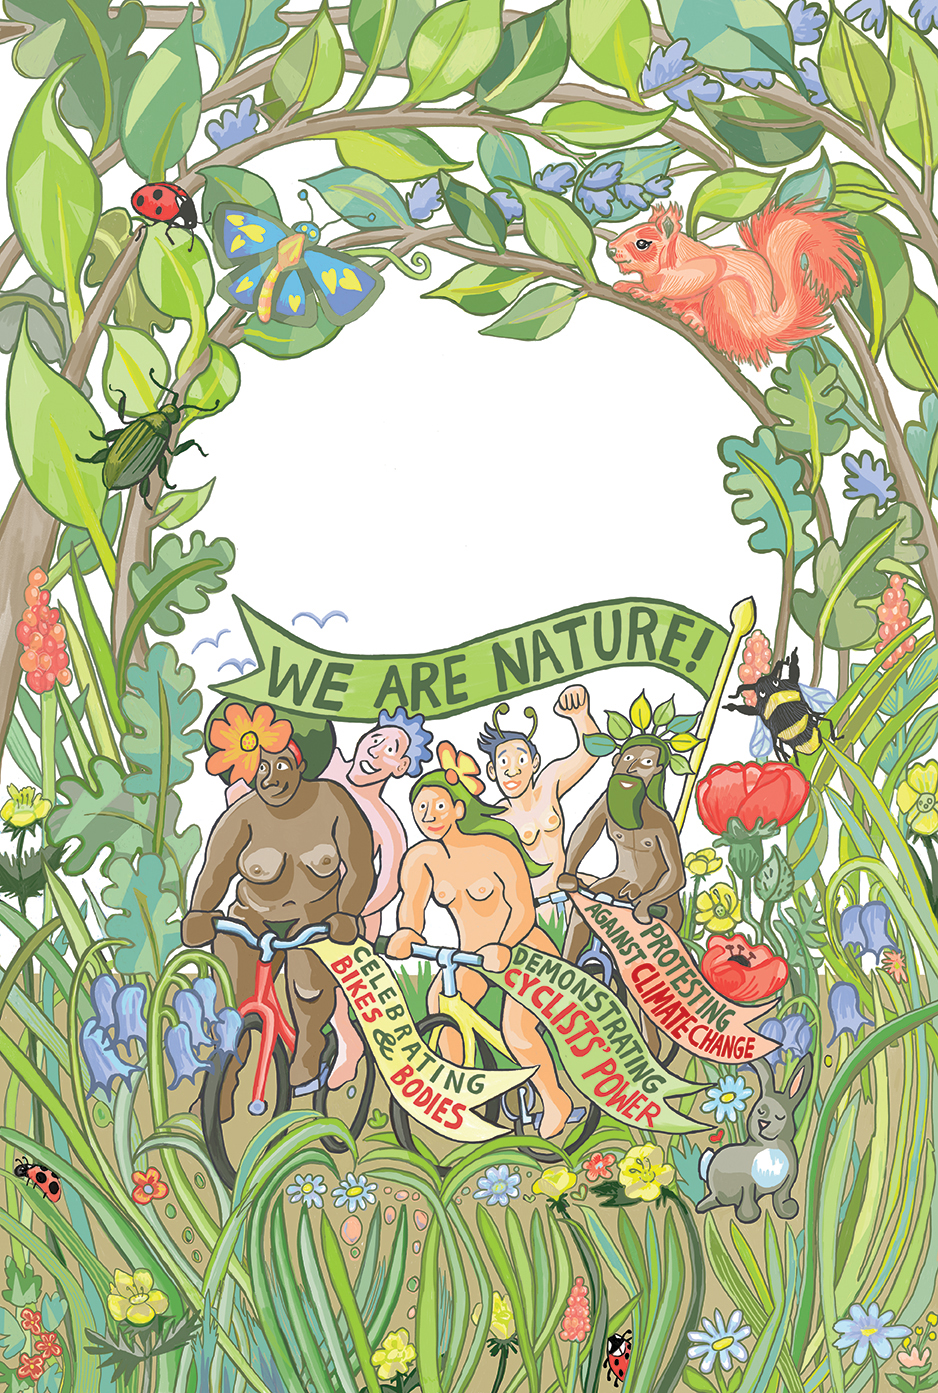 Myfanwy Tristram naked bike ride Brighton 2019 poster design